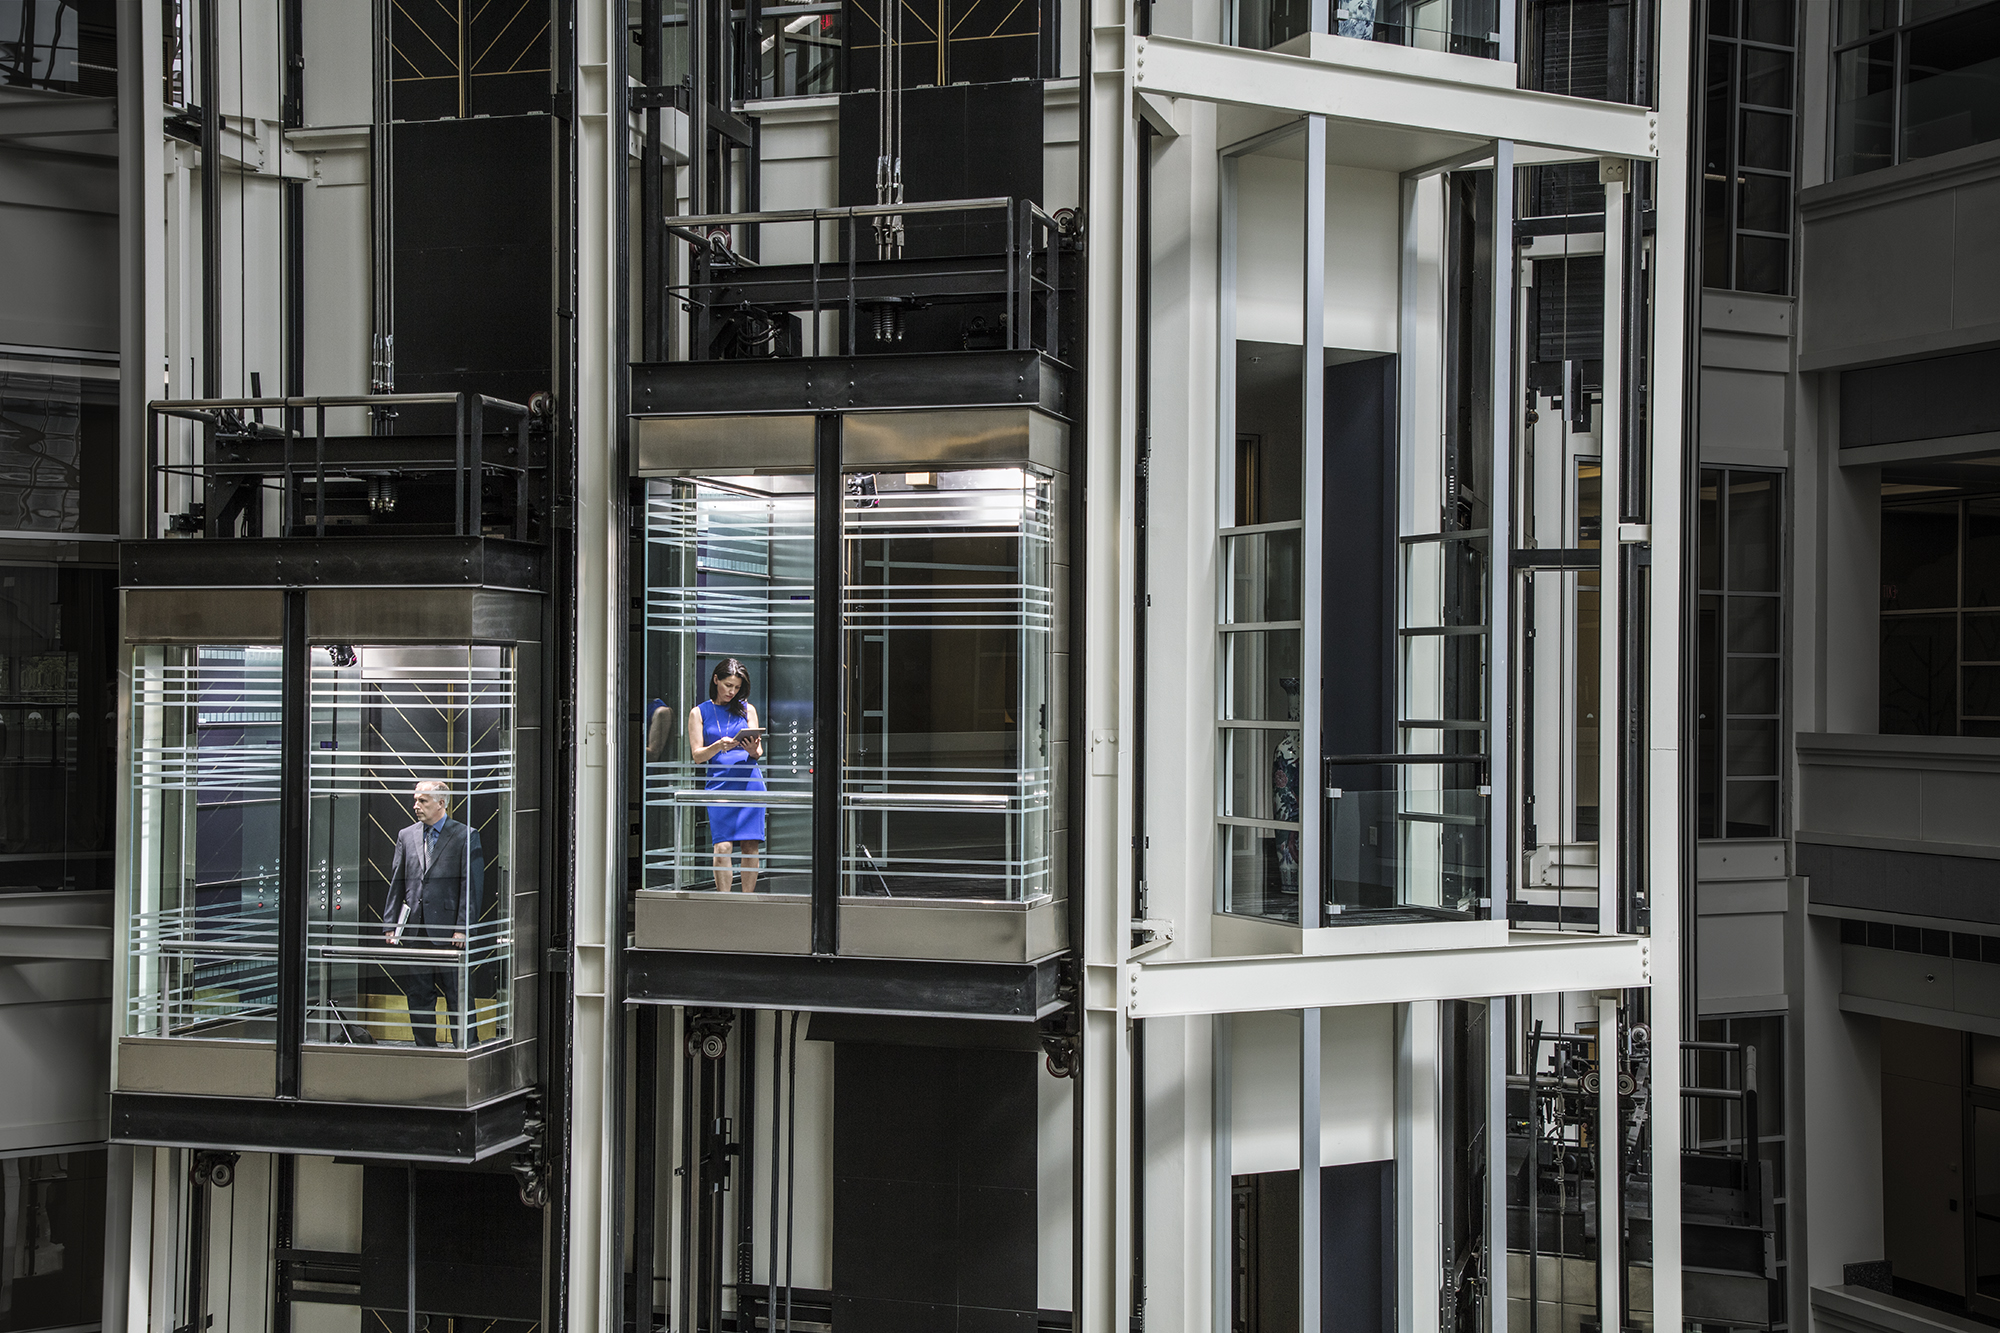 Image of two elevators passing.